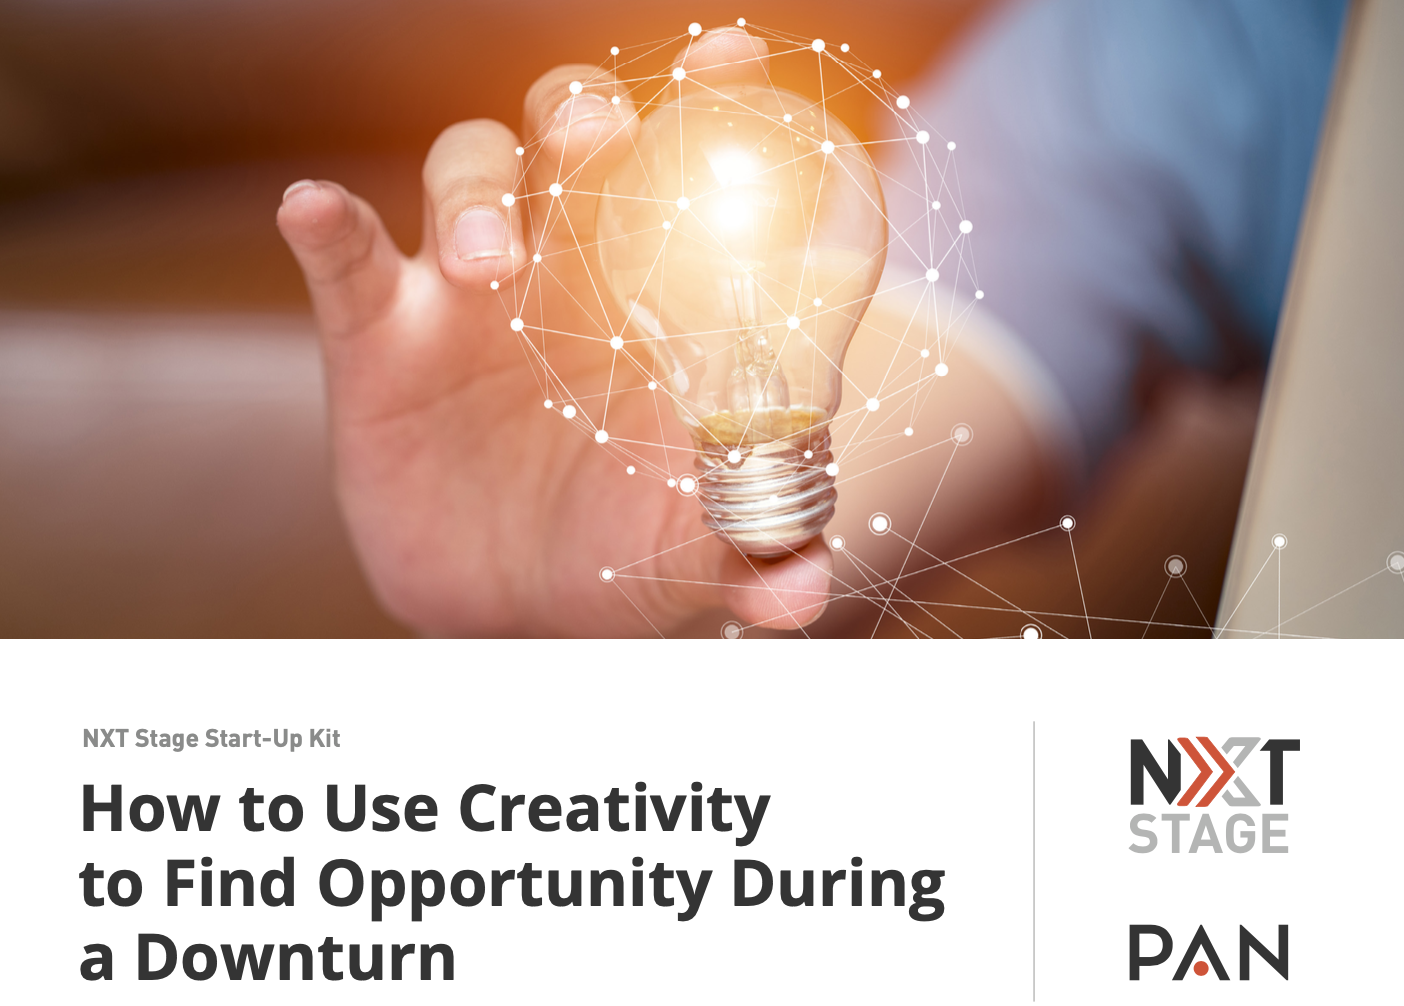 How to Use Creativity to Find Opportunity During a Downturn